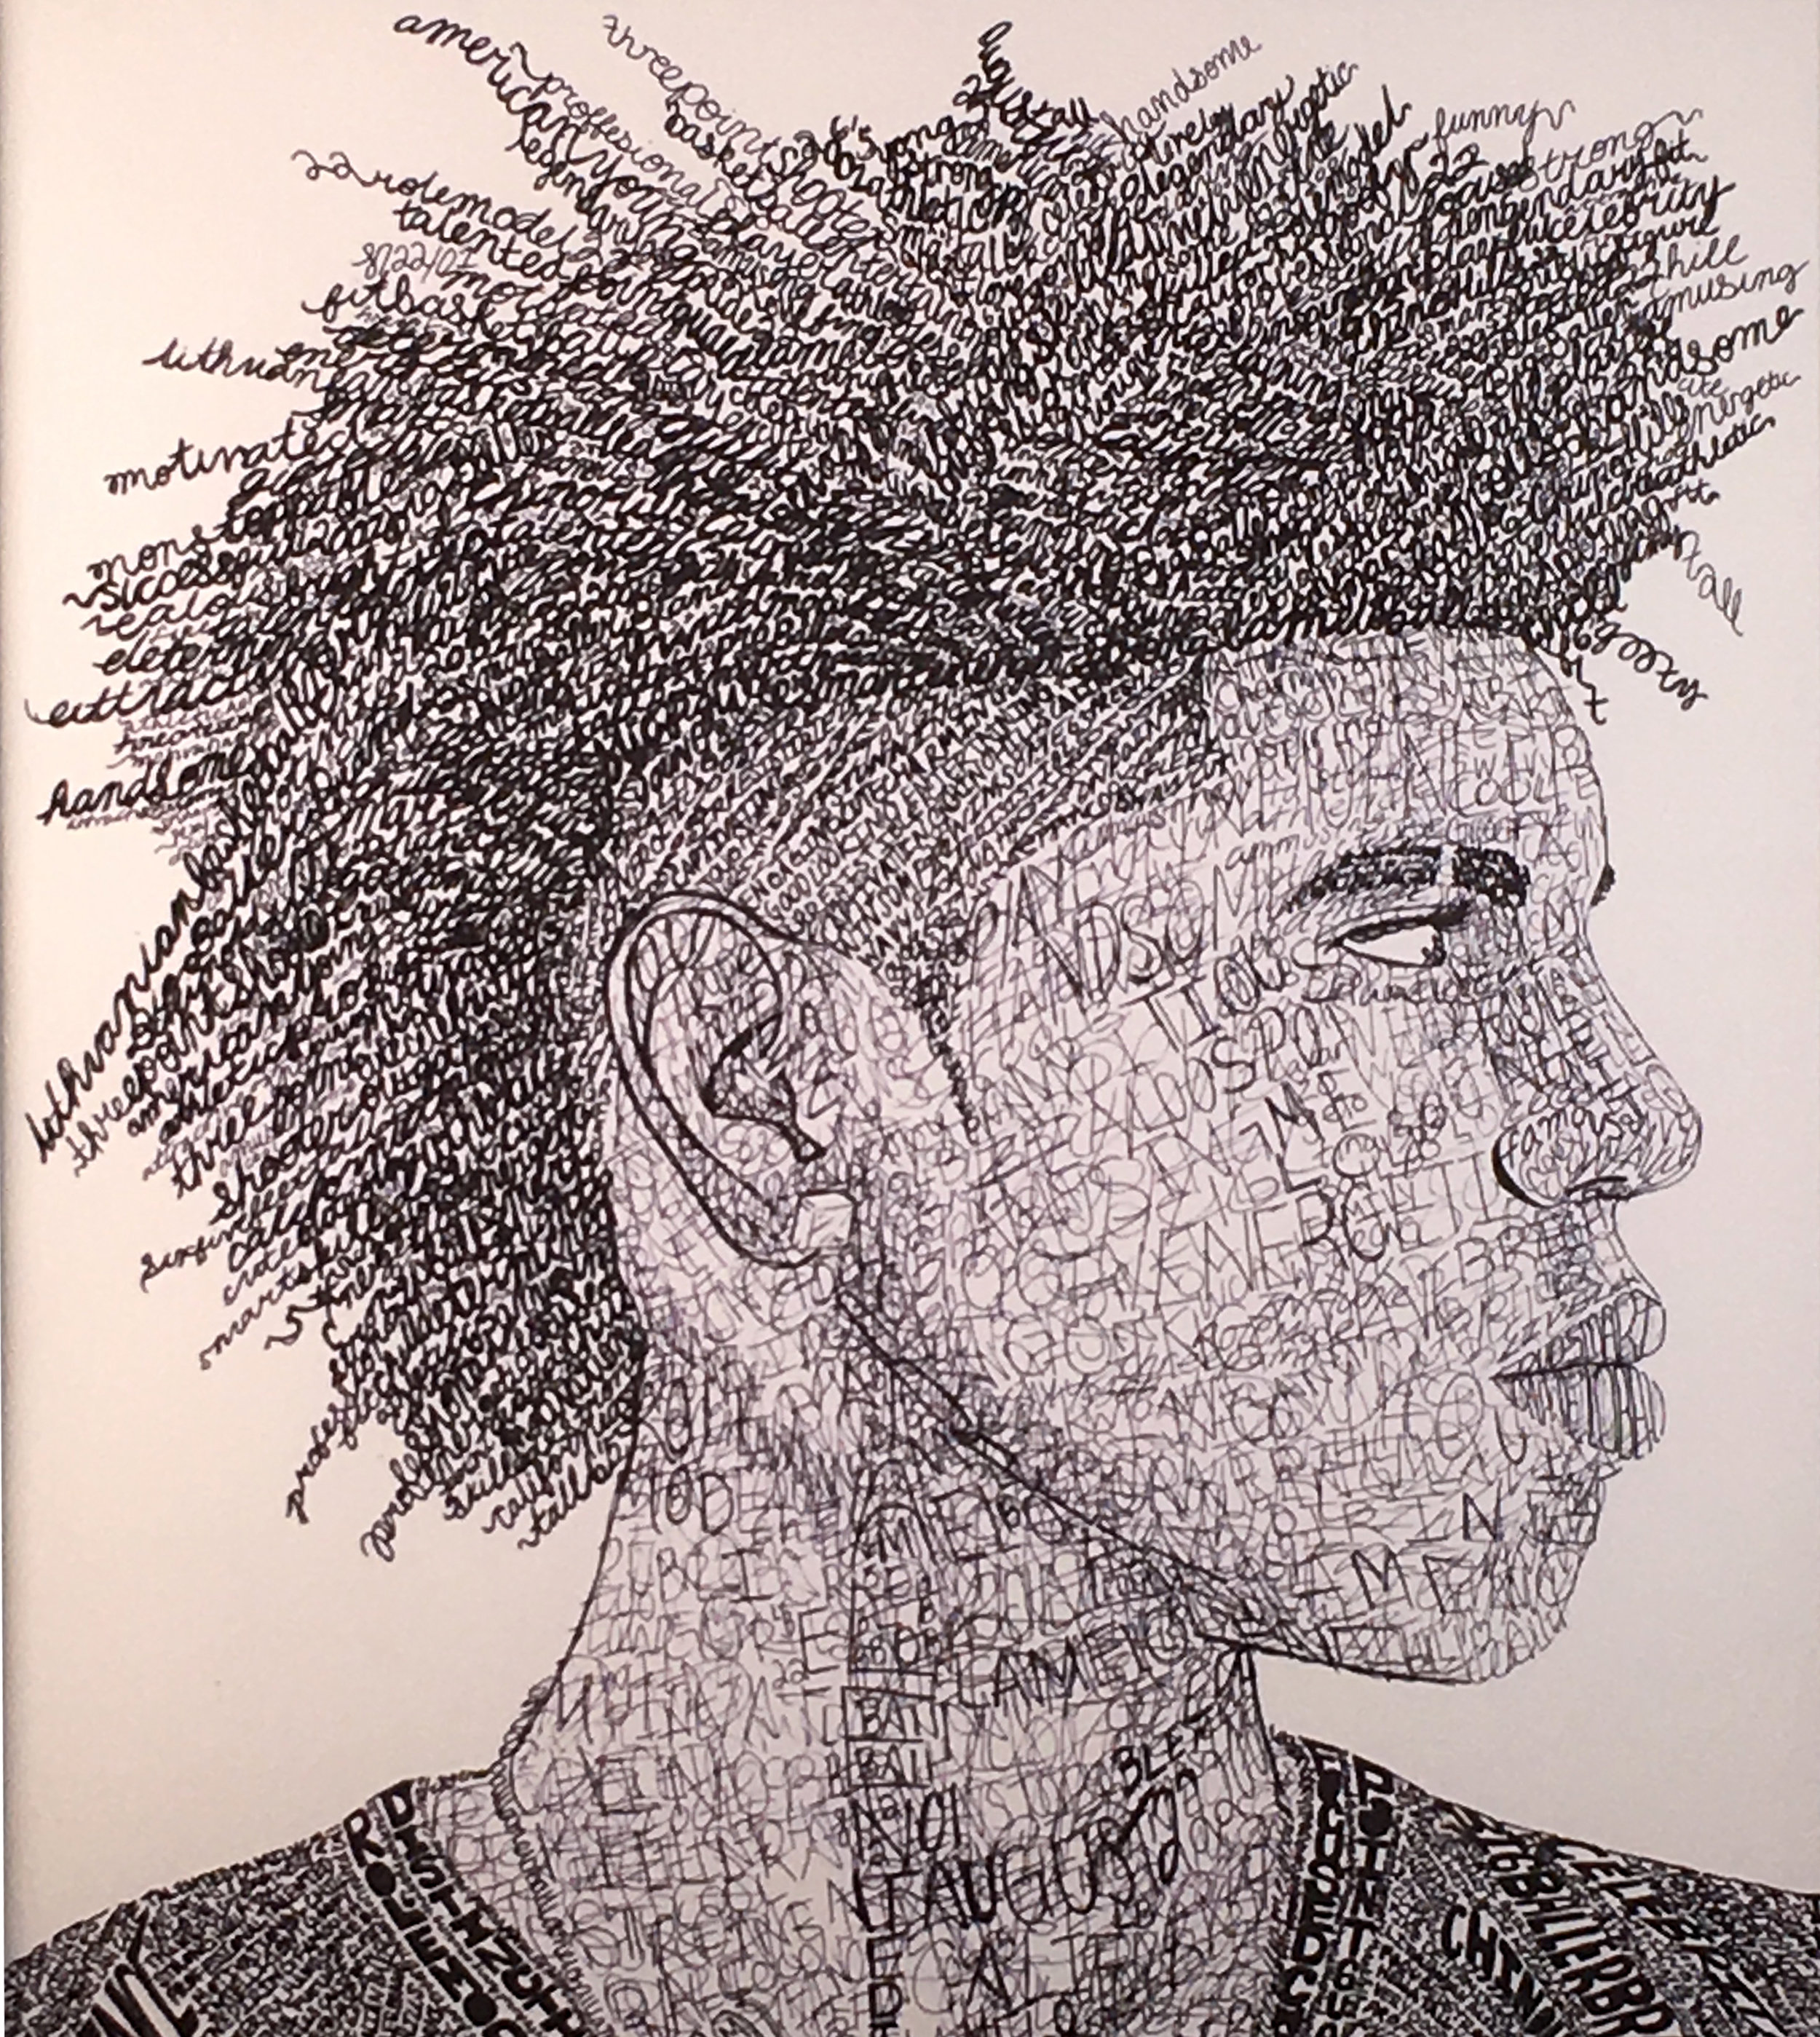 Evelyn Gonzalez  Untitled Micron Pen  Perth Amboy HS 16x20  Middlesex County